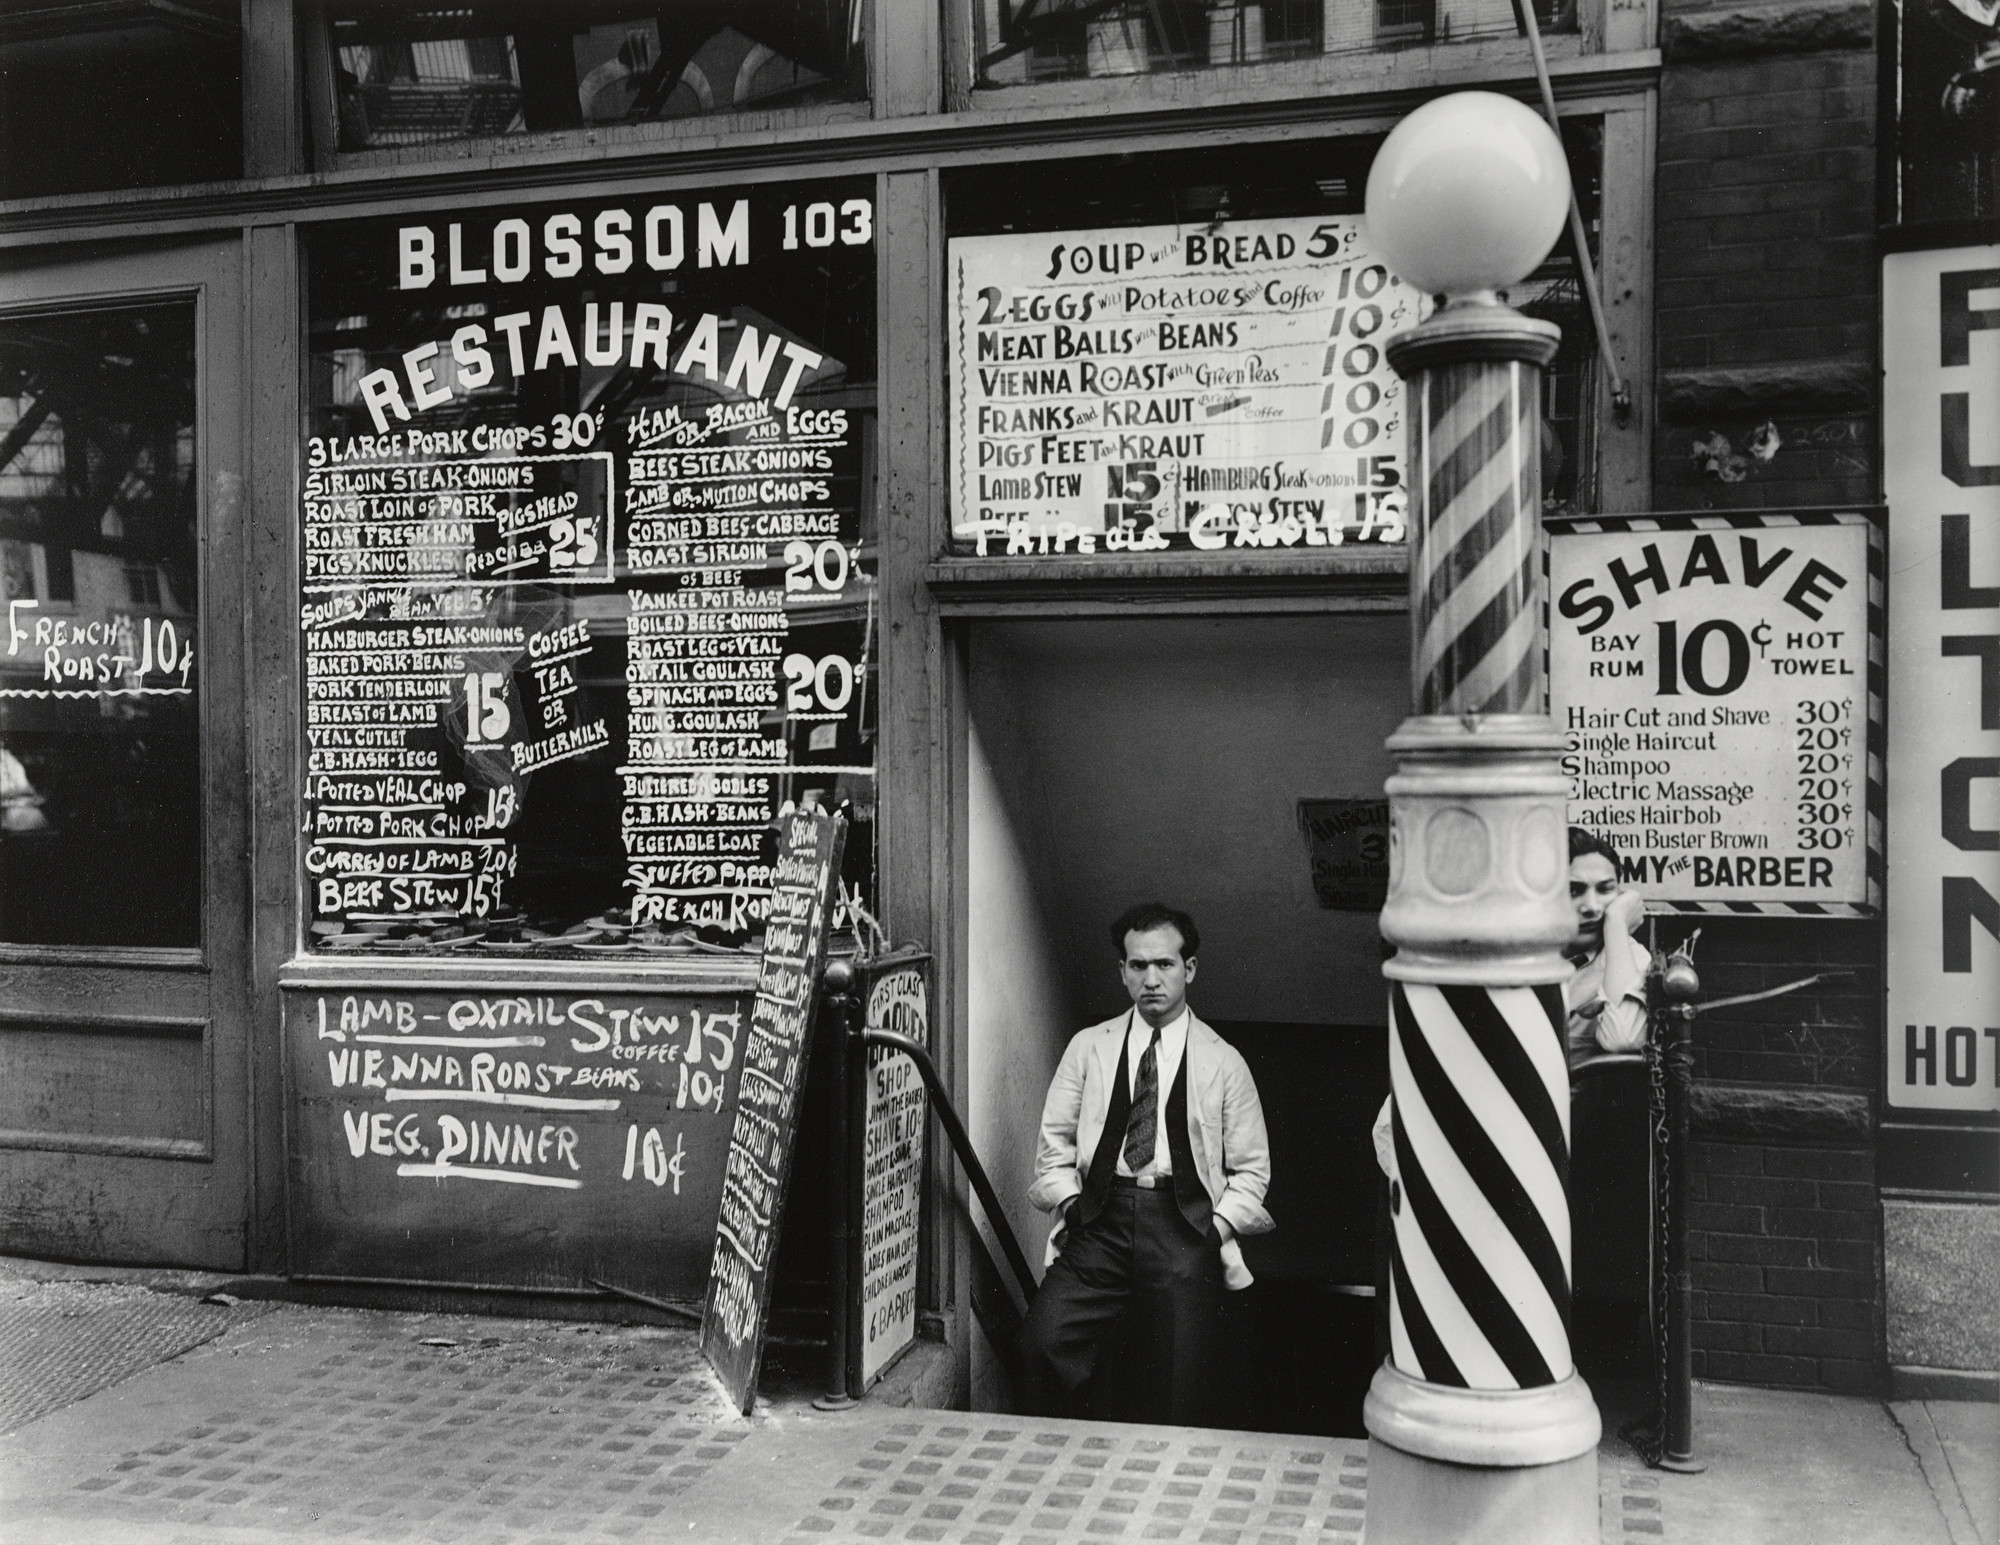 Berenice Abbott. Blossom Restaurant, 103 Bowery, Manhattan. October 24, 1935